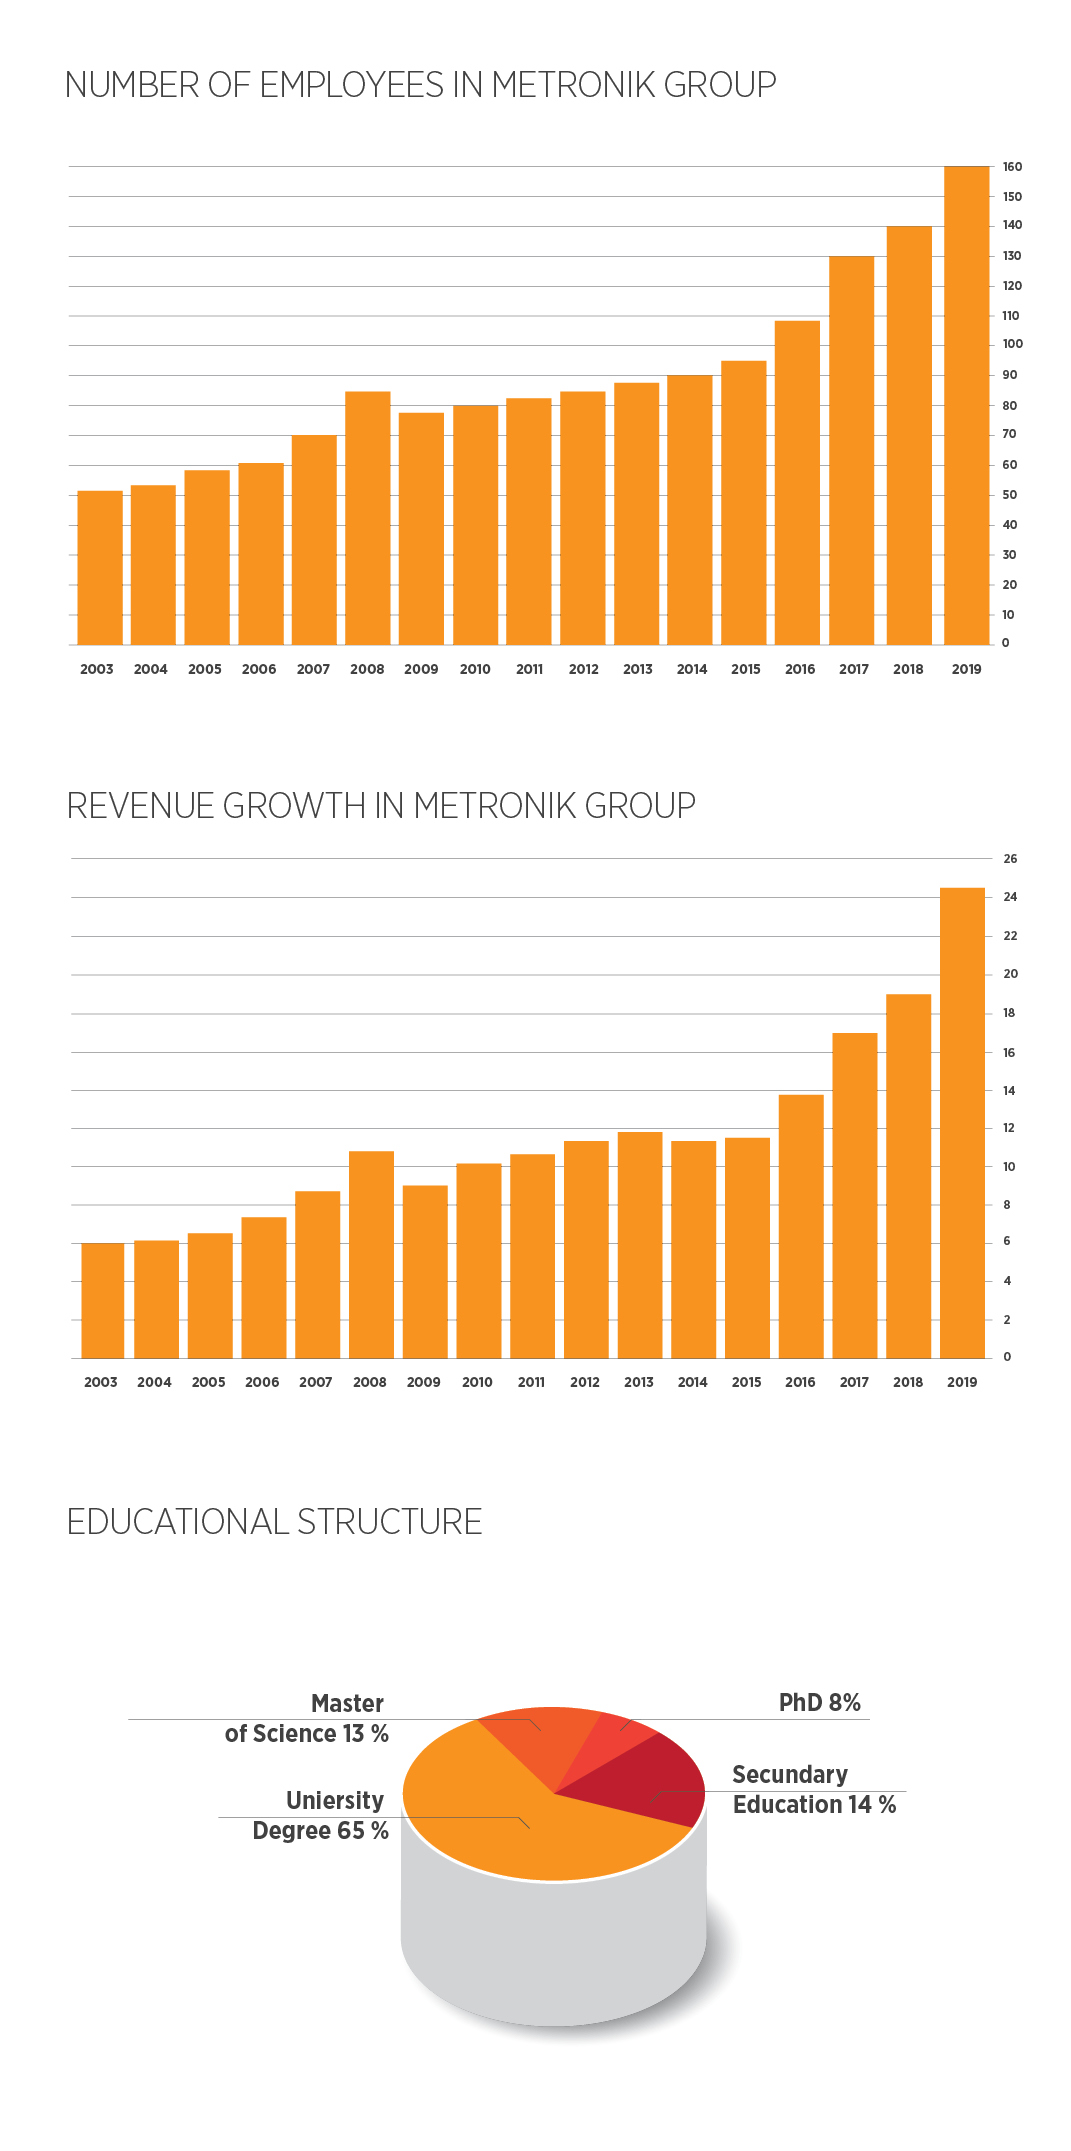 GRAPHS OF COMPANY GROWTH